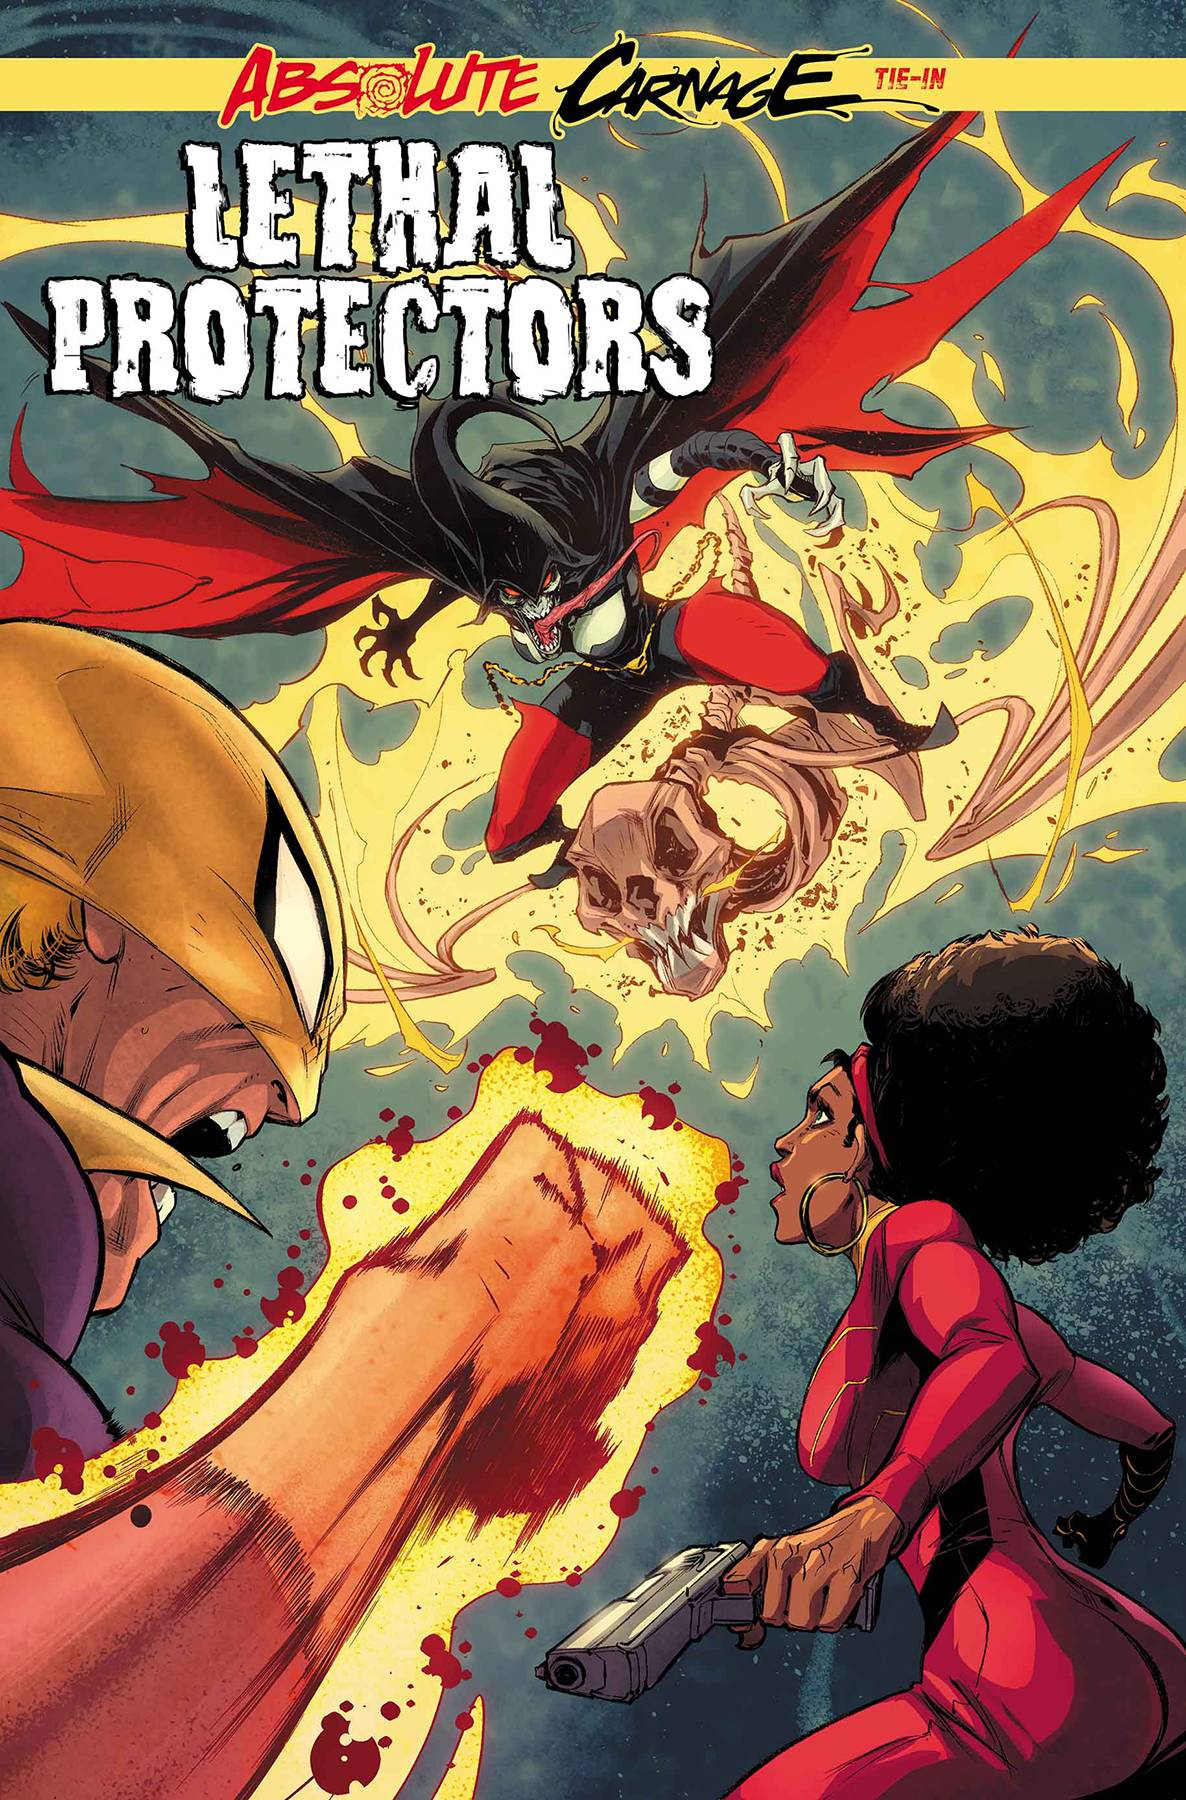 09/18/2019 ABSOLUTE CARNAGE LETHAL PROTECTORS #2 (OF 3) AC